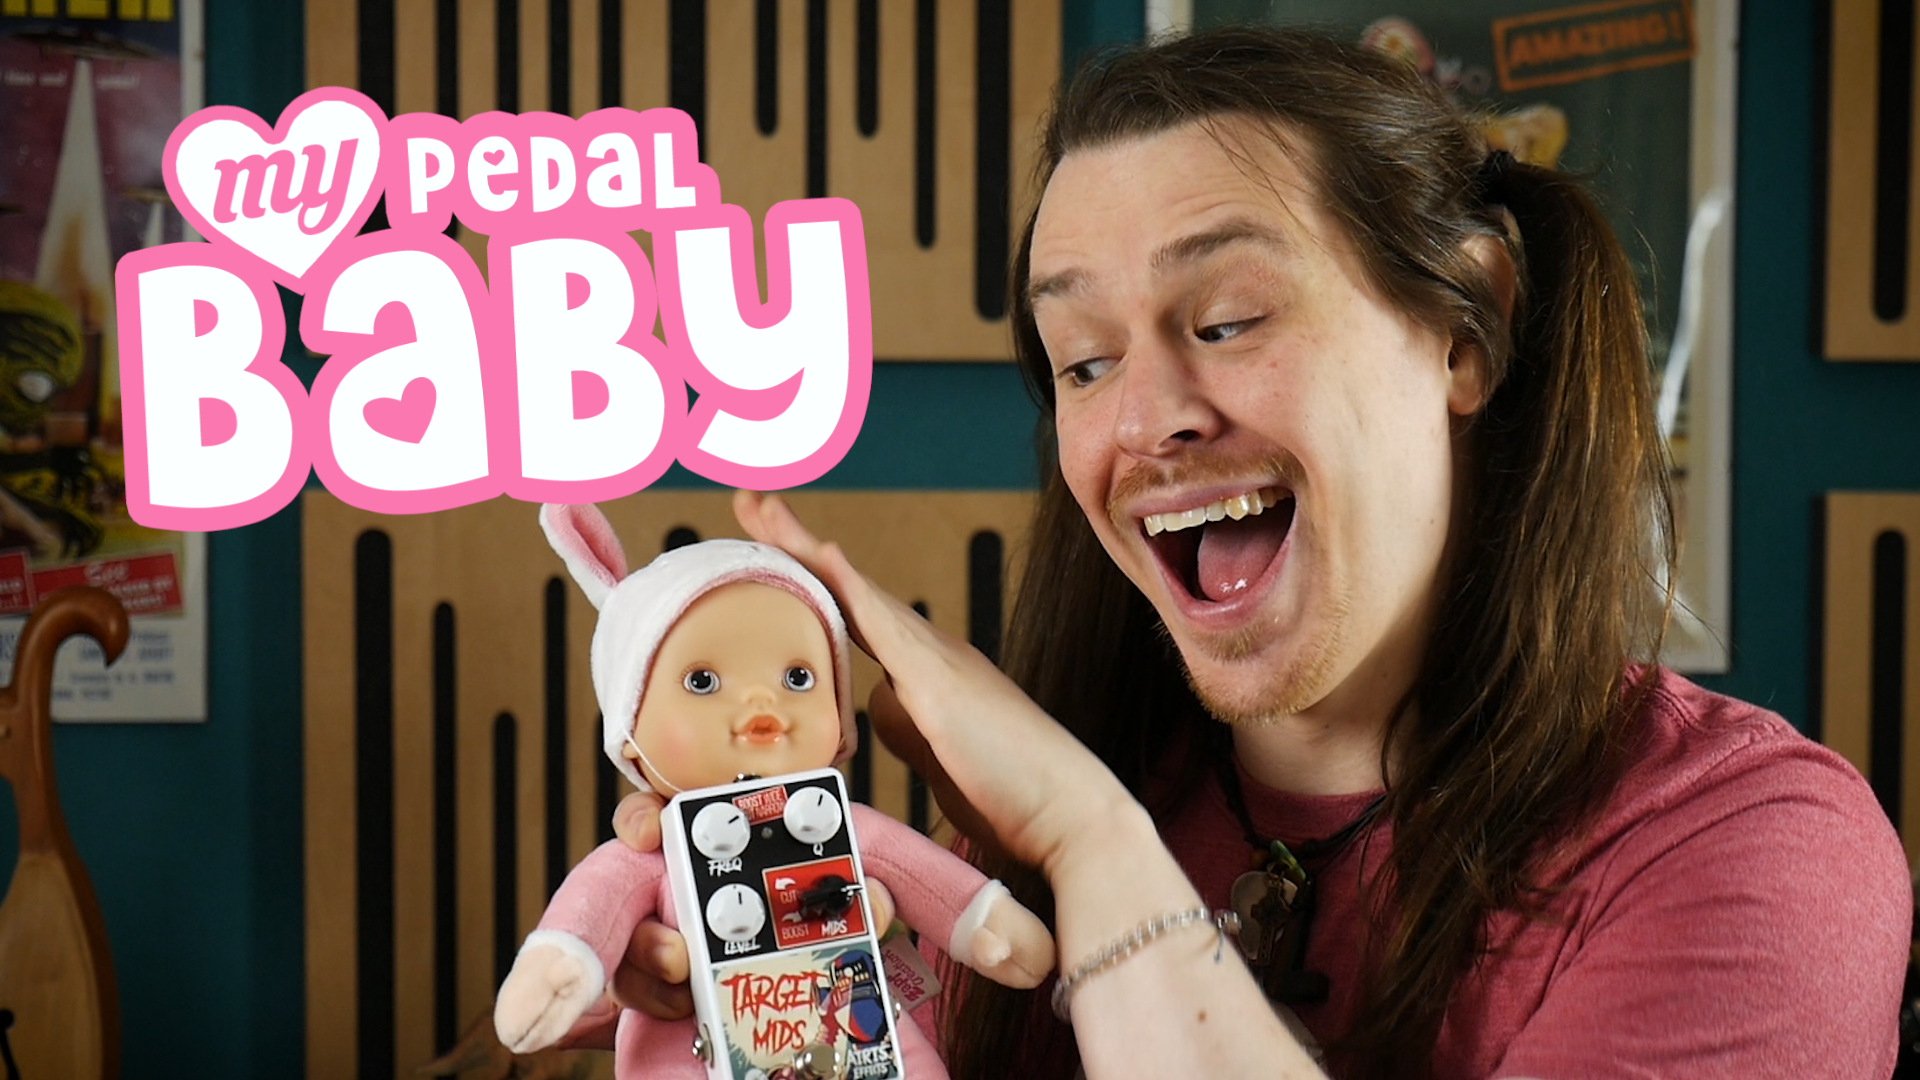 Not to be confused with the sweet and demonic 'My Pedal Baby'